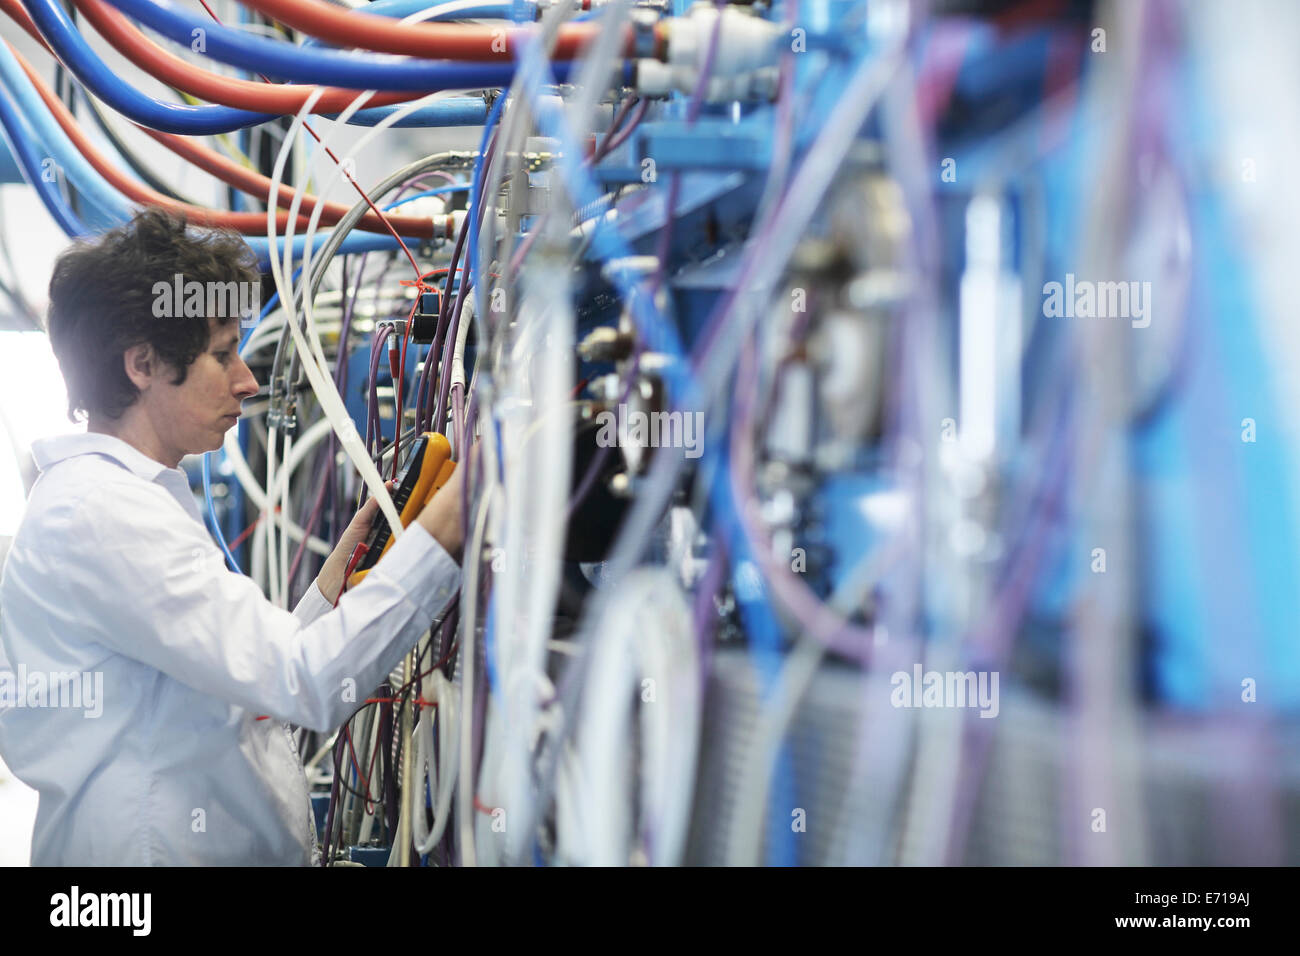 Technician at work - Stock Image